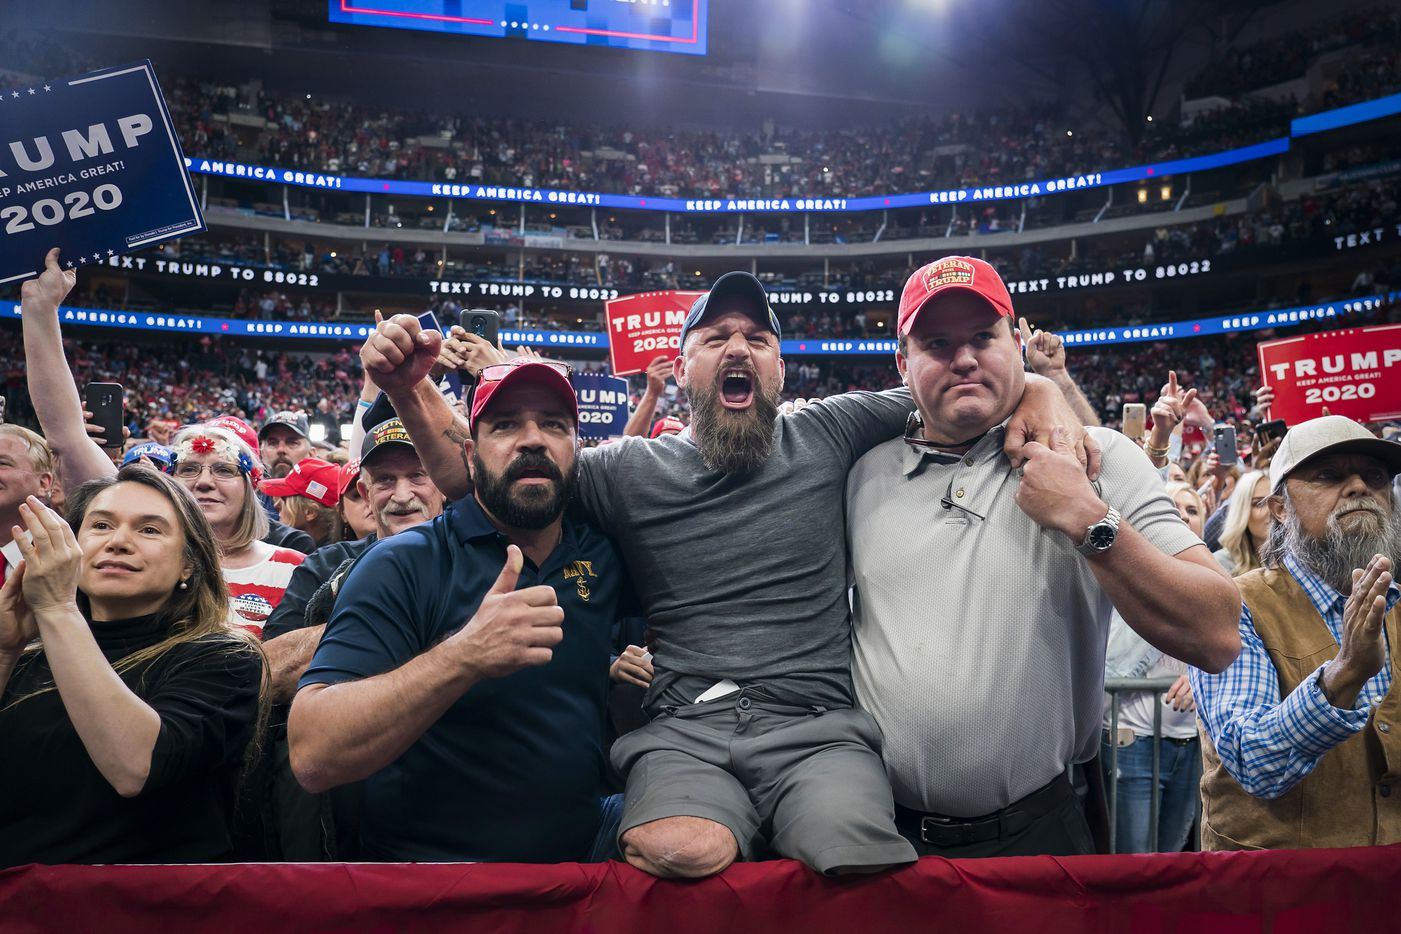 Wheeler, who told the Associated Press that he lost his legs after a training injury when jumping out of a Blackhawk helicopter stateside in 2002, joined other supporters in the front form as President Donald Trump speaks during a campaign rally at the American Airlines Center on Thursday, Oct. 17, 2019, in Dallas.